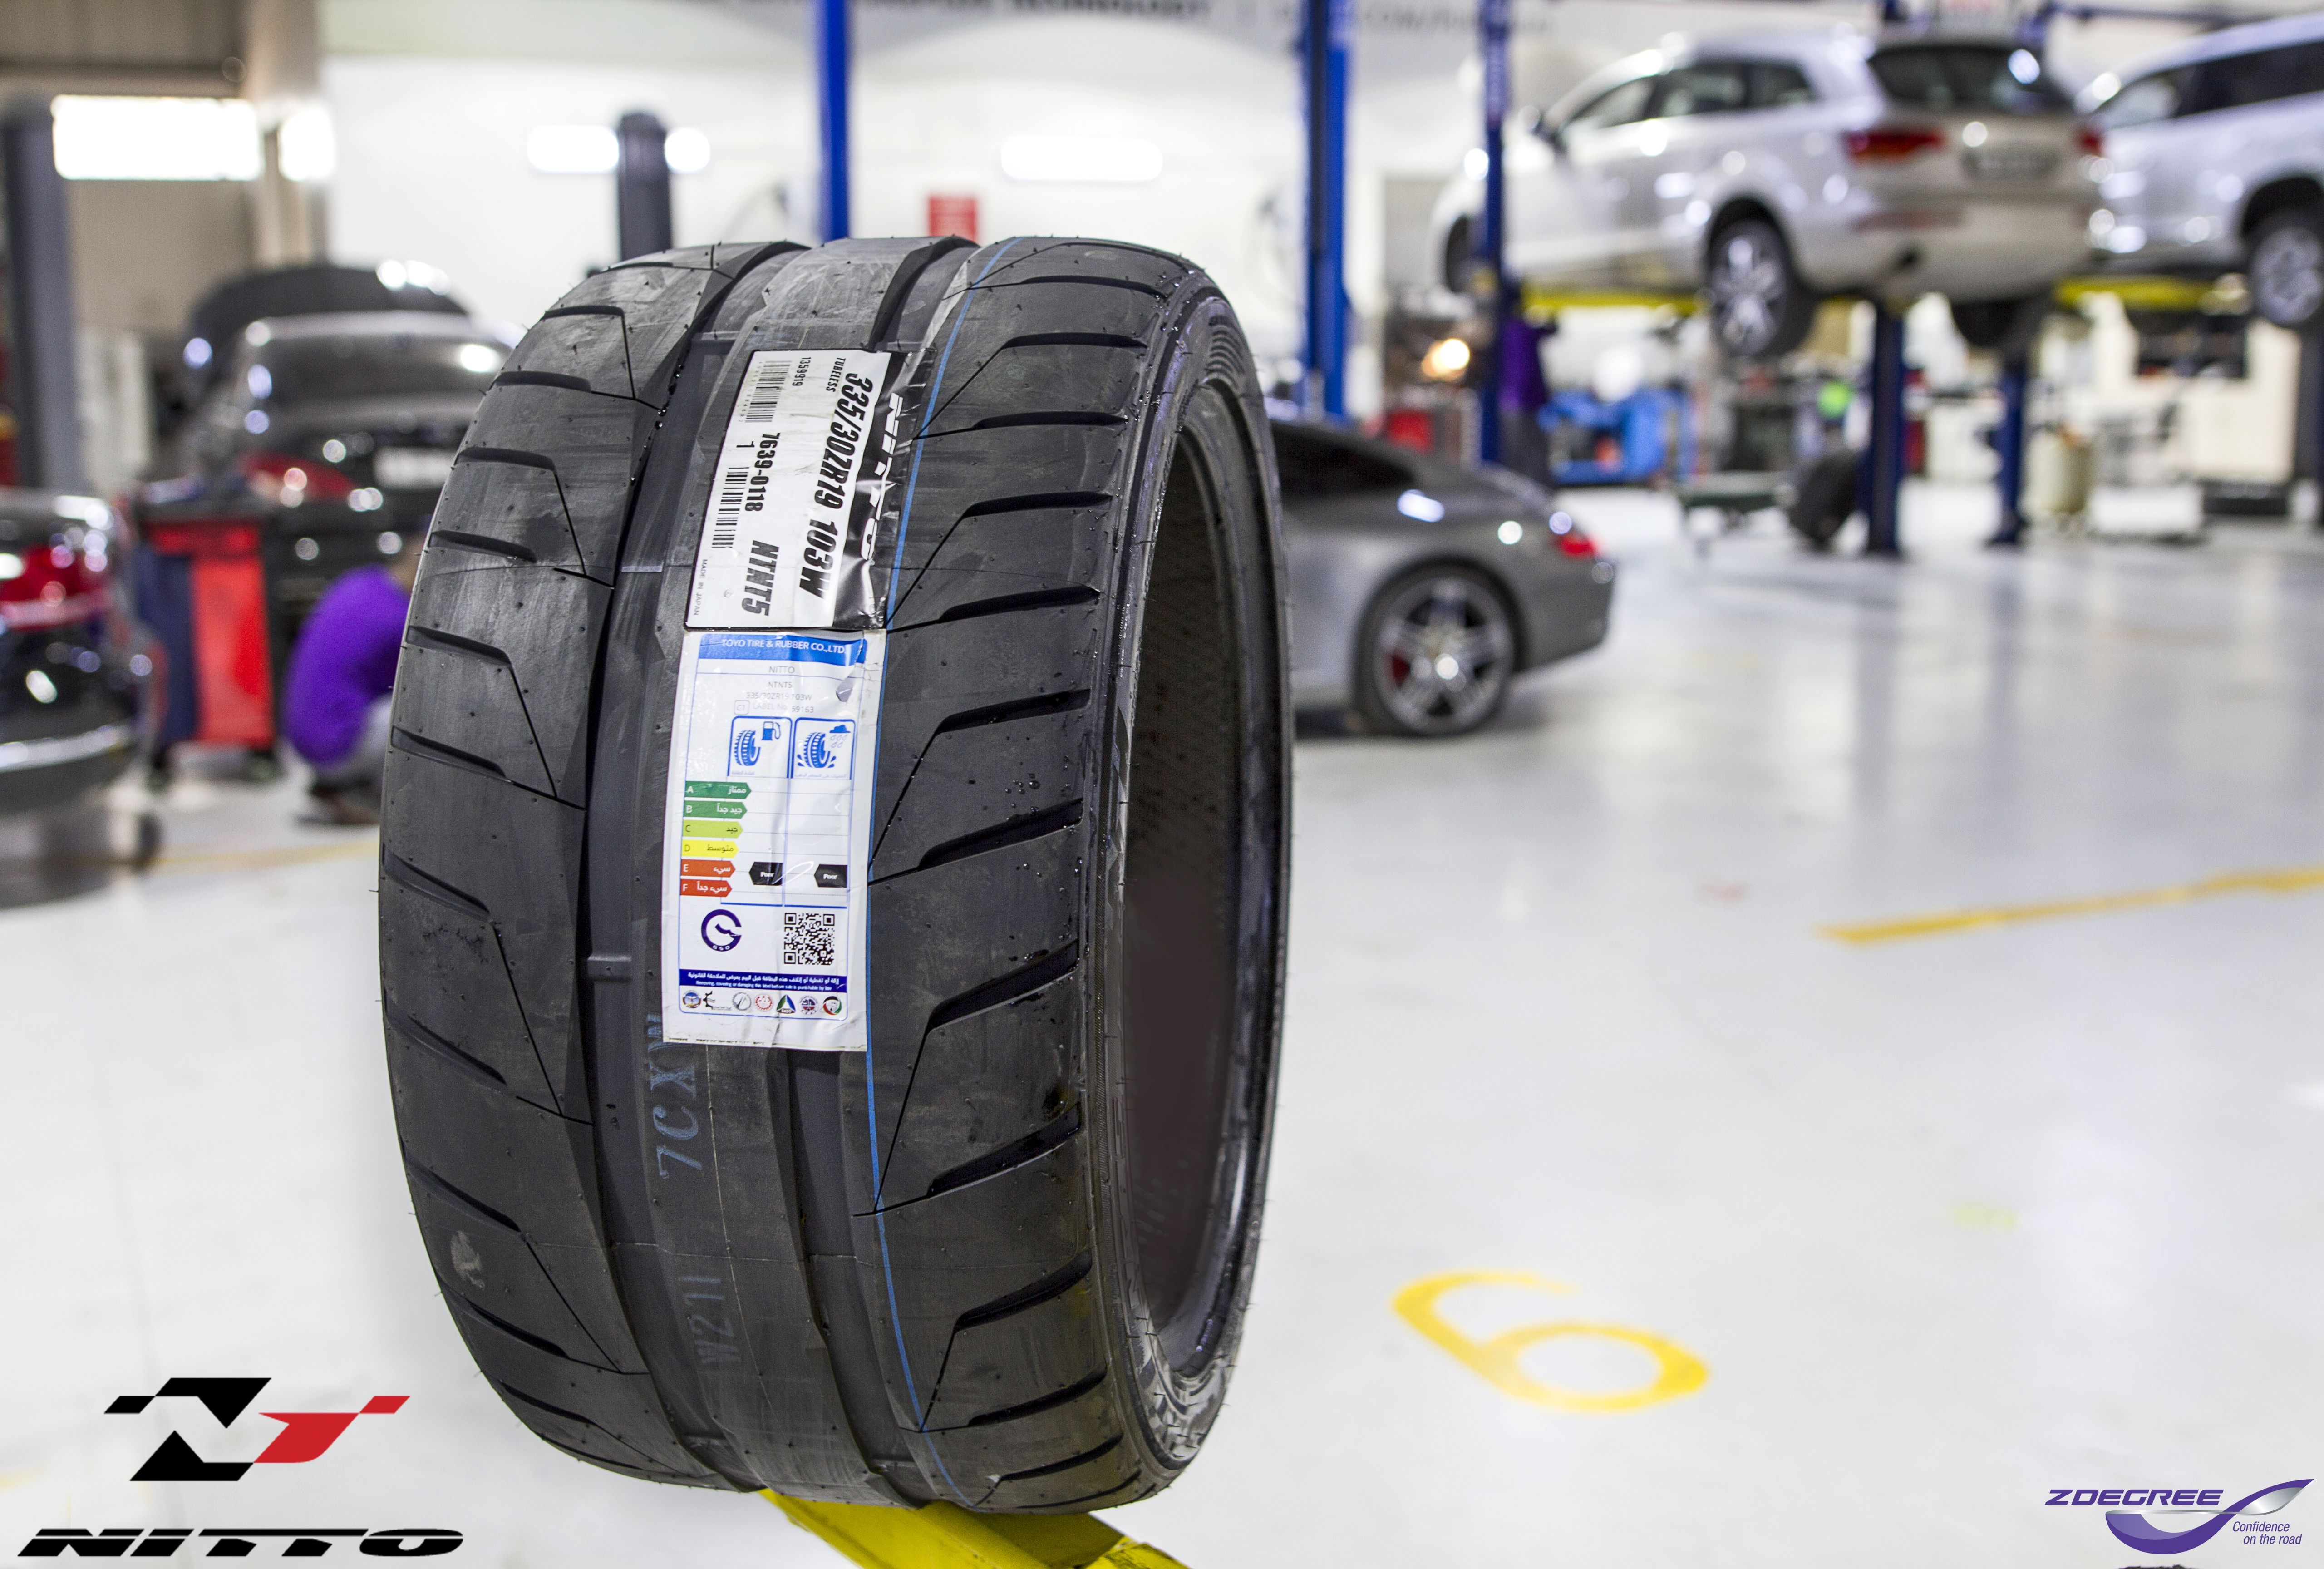 Looking For Nitto Nt05 Tires Tire Sizes Are Listed Below 235 35 19 91w 235 40 18 95w 245 35 19 93w 255 35 20 97w Buy Tires Tyre Shop Tyre Size